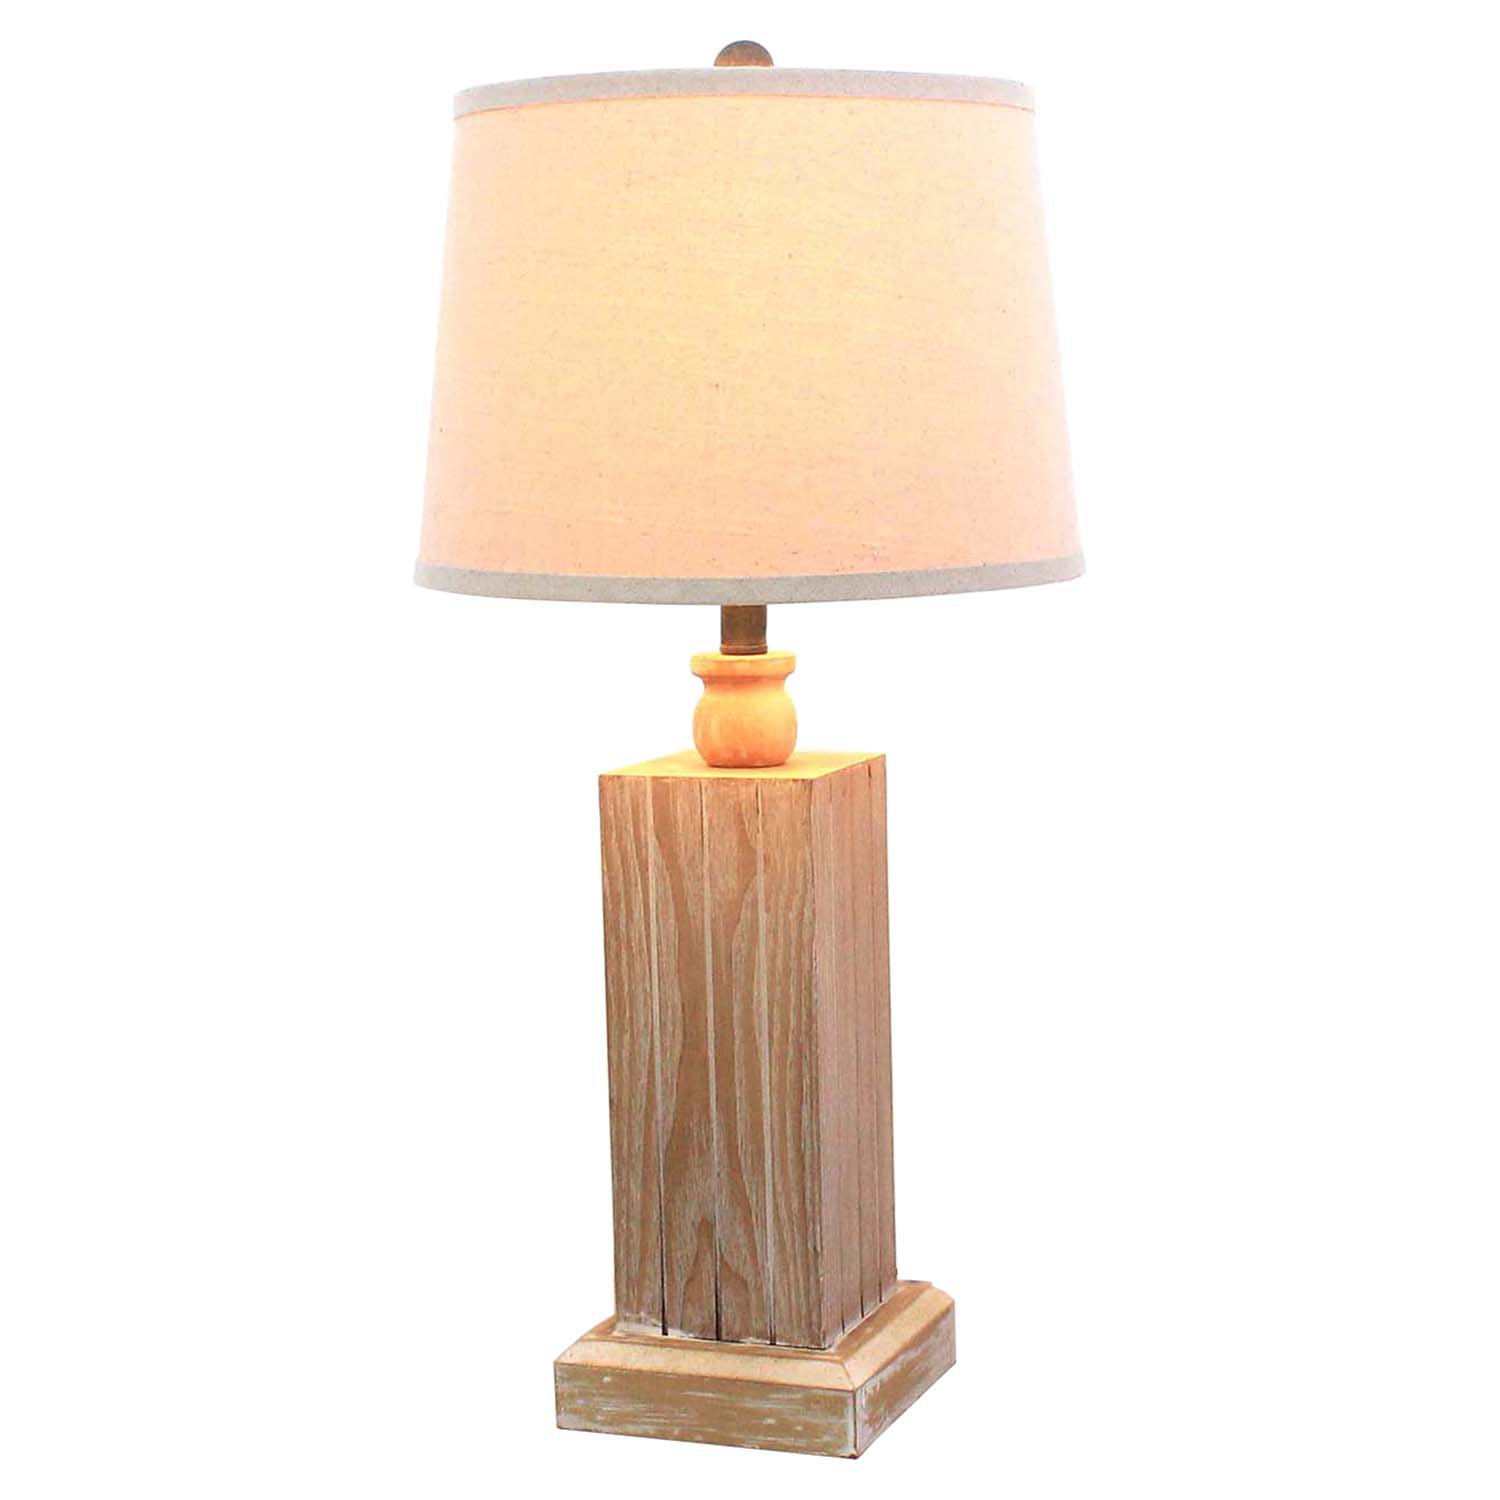 Distressed Wood Table Lamp Set Of 2 Dcg Stores